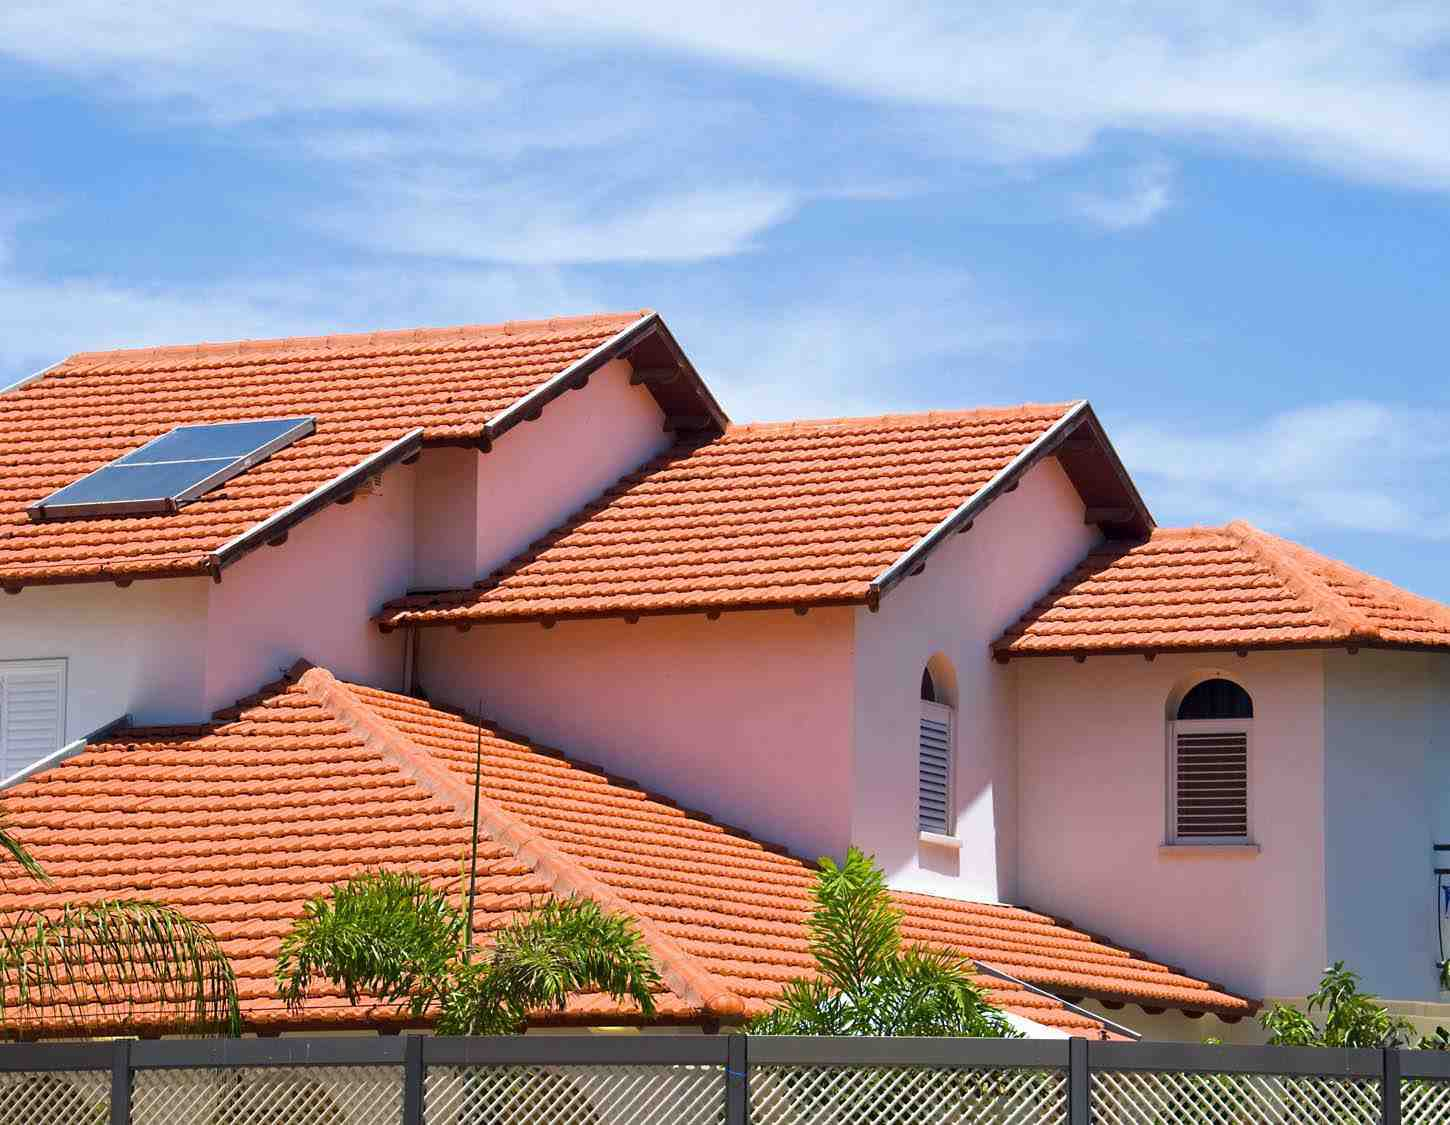 How many roofing companies are there in the US?